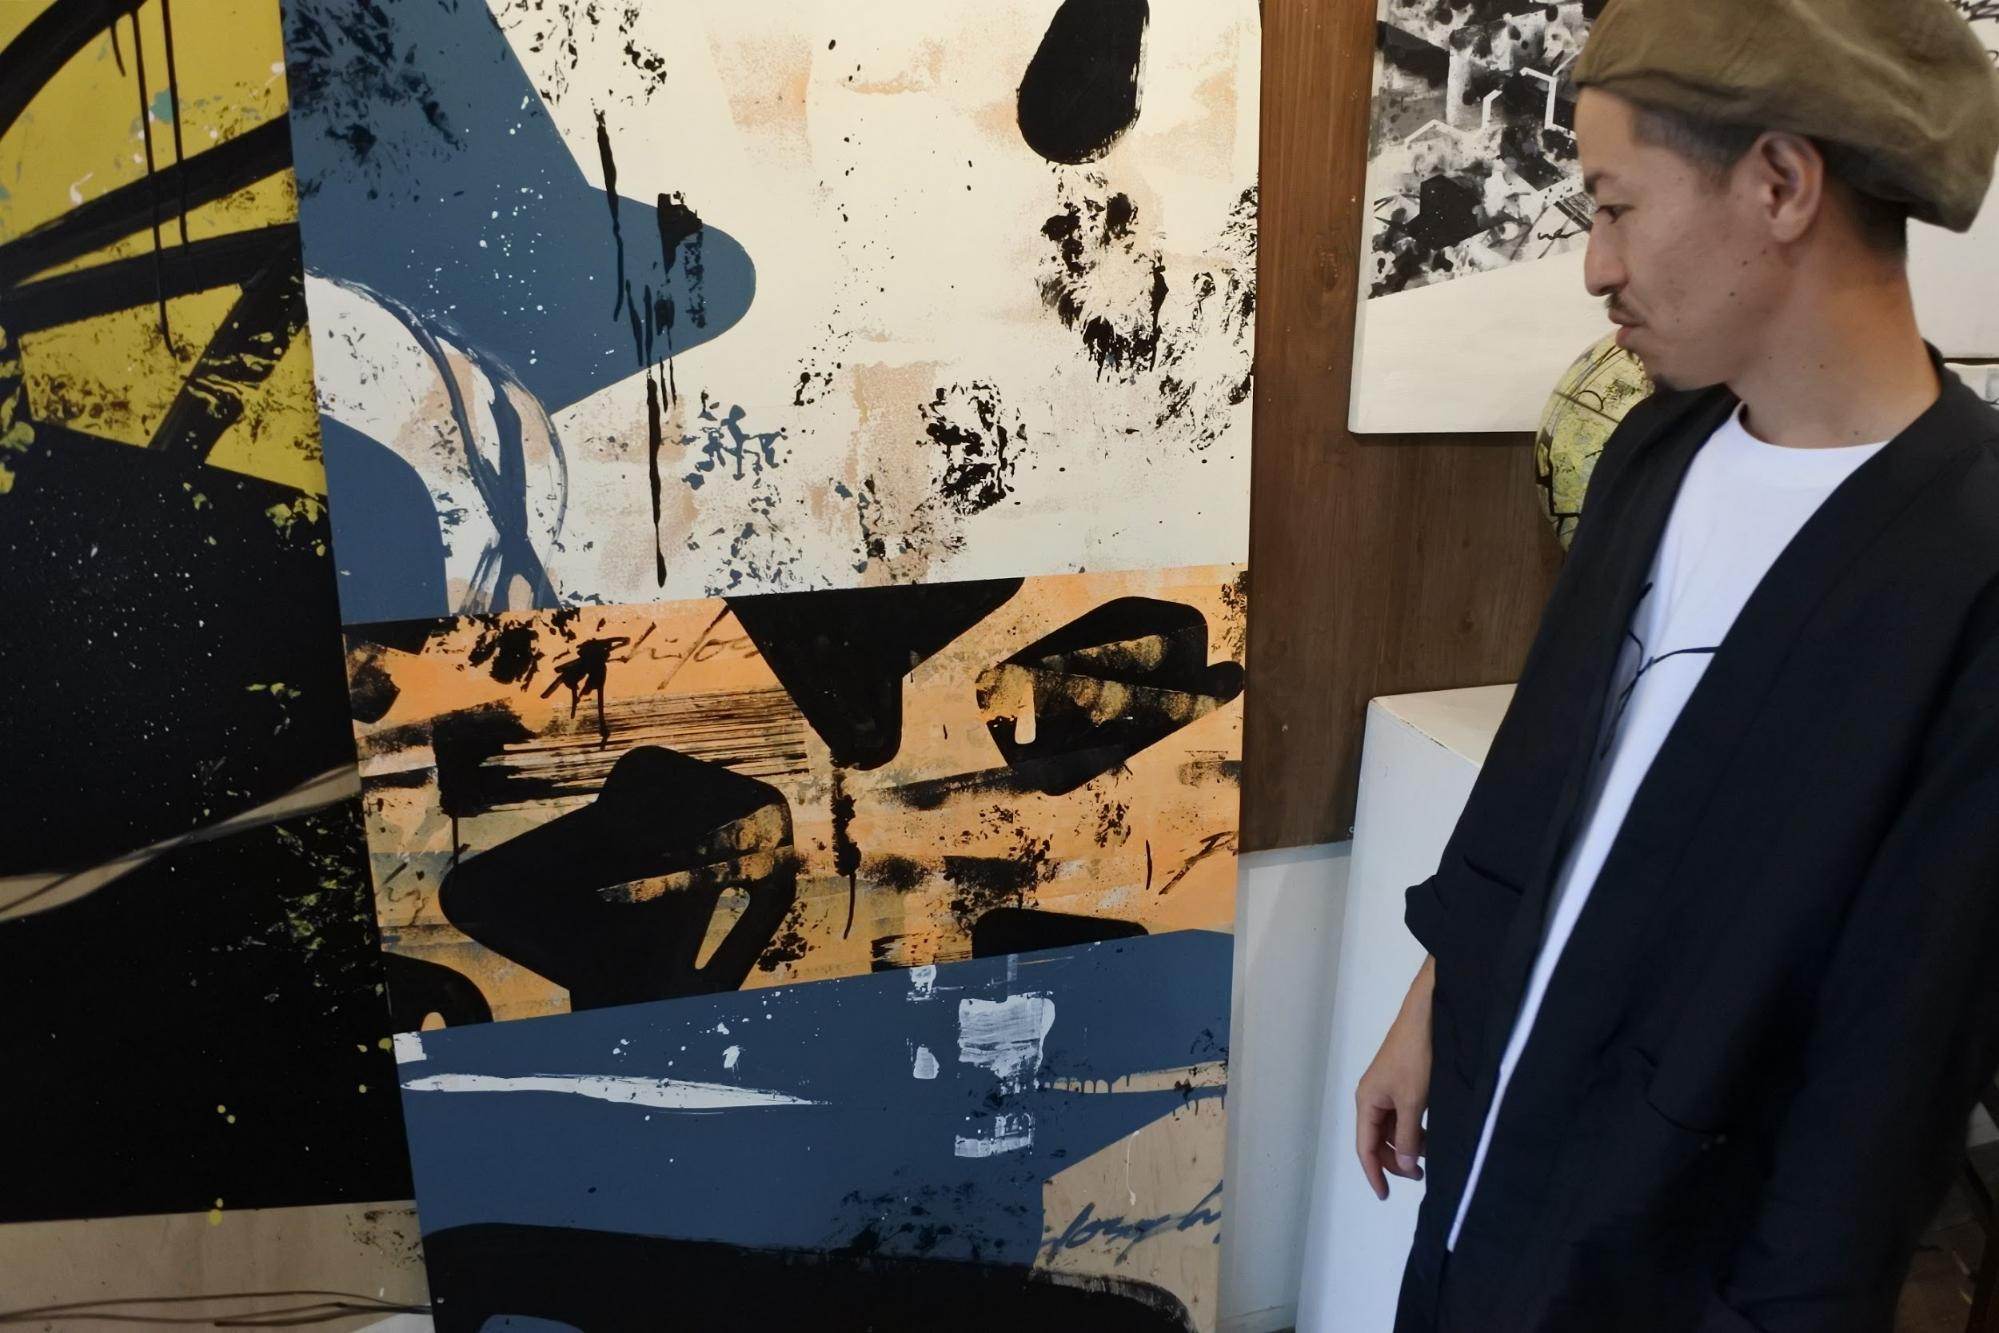 DENPA explains about his paintings | Photo by Masaya Morita